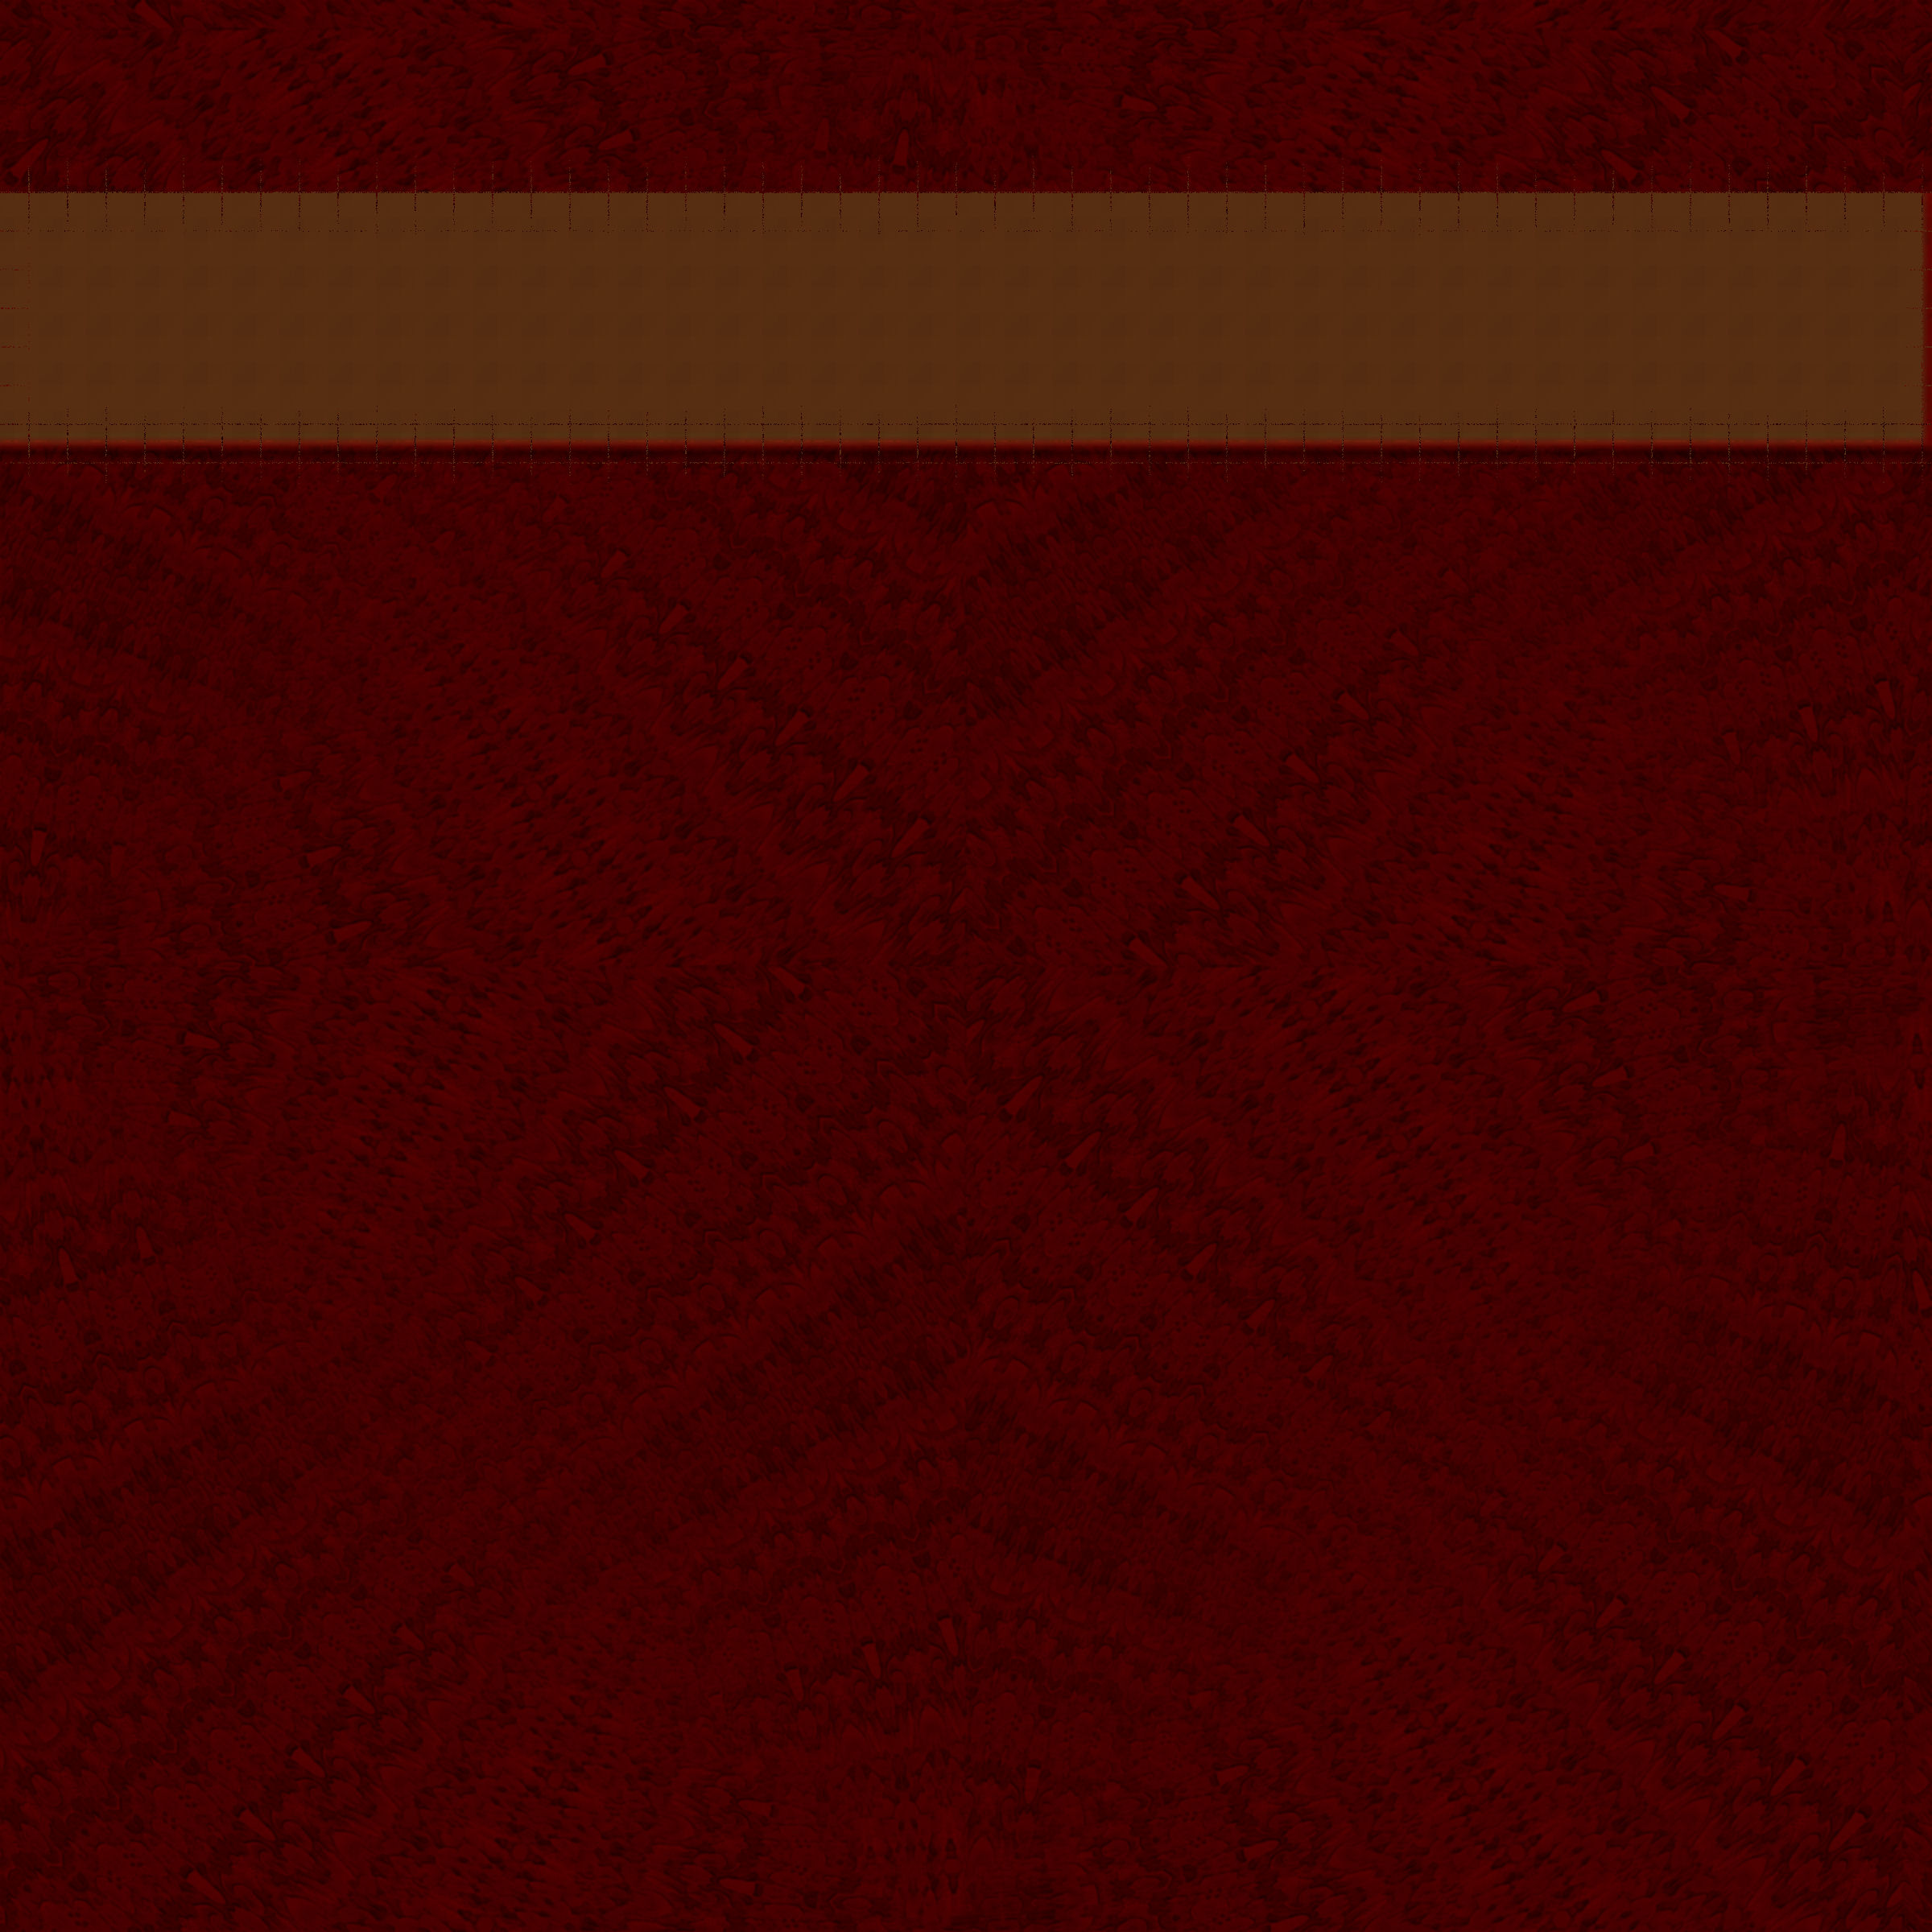 burgundy and gold holiday wallpaper - photo #6